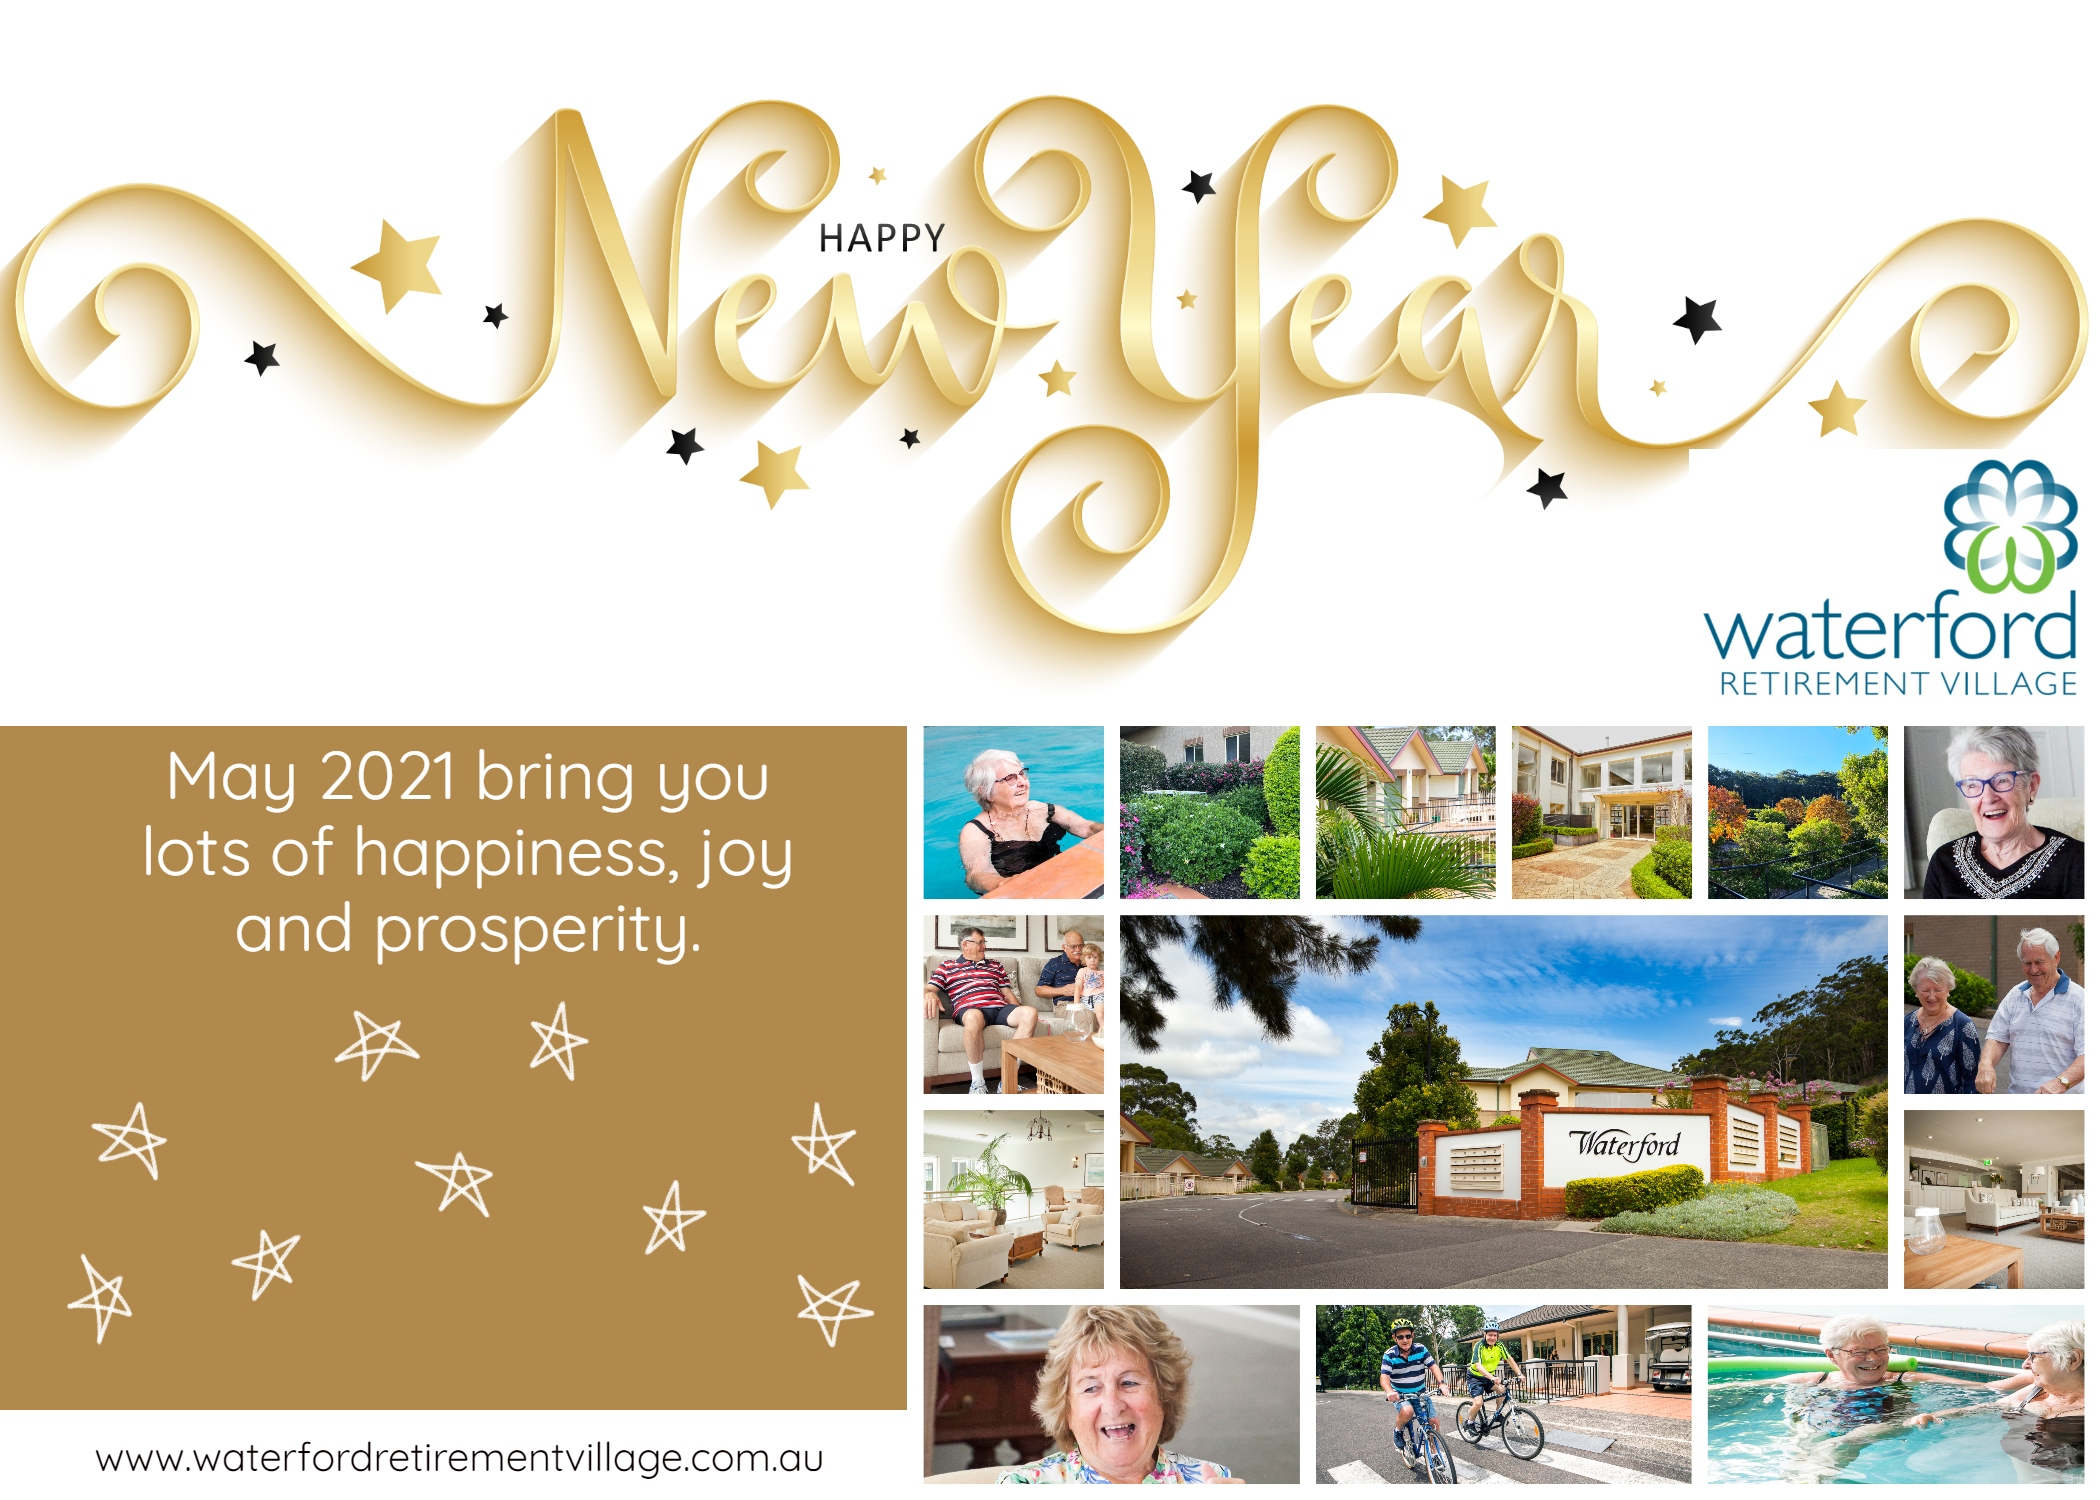 Happy New Year from Waterford Retirement Village